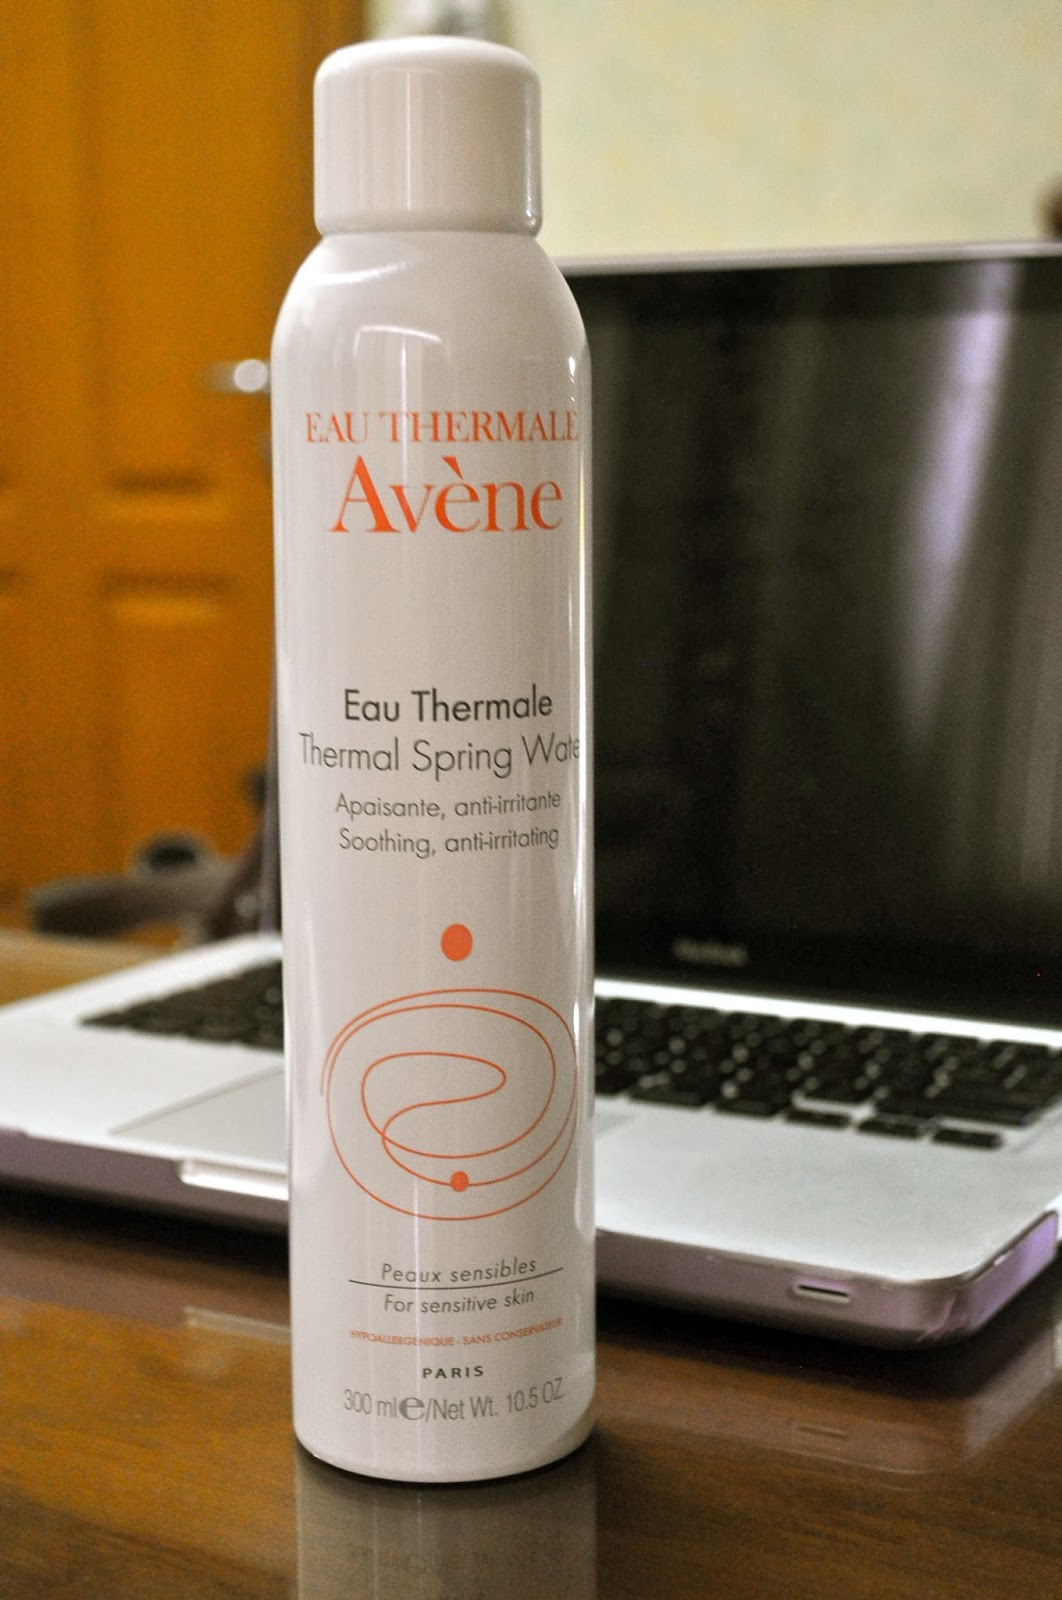 The Battle Of Mists Evian Vs Avene Beauty Reviews Facial Spray 300ml As Soon I Got Home Quickly Put This To Use And My Surprise It Does Work Wonders On Skin Mean Lets Not Brand A